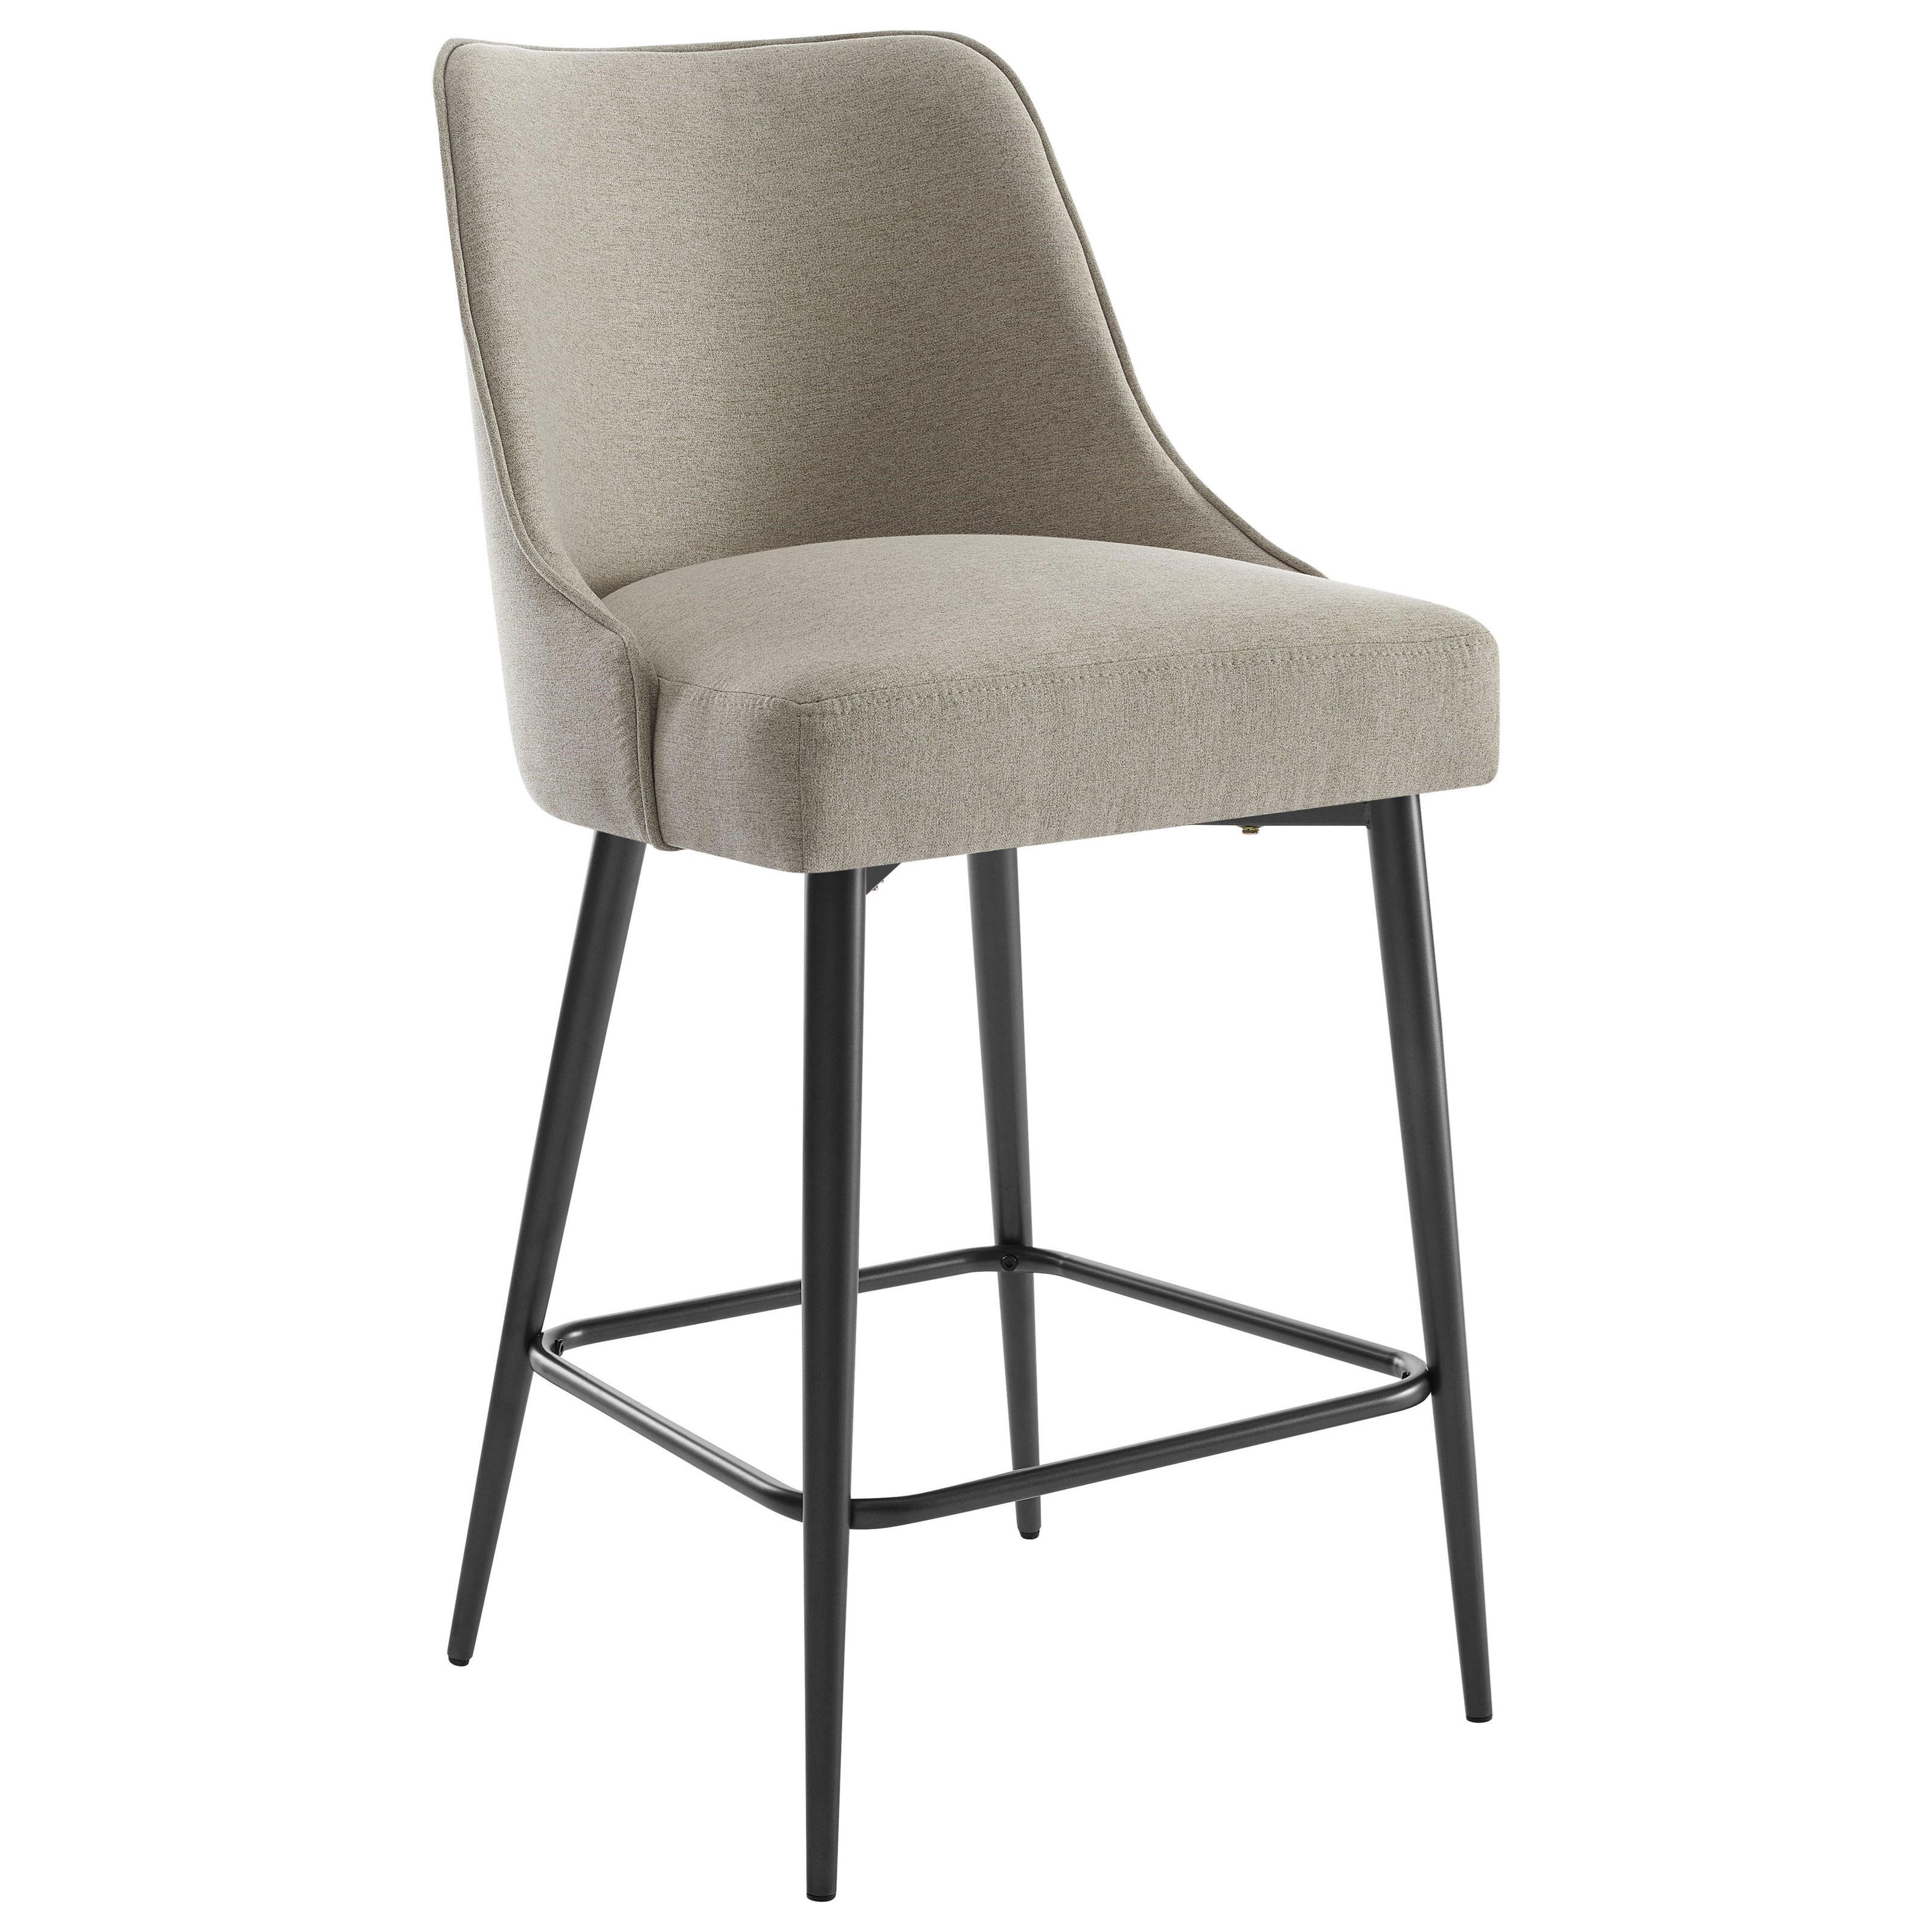 Olson SS Upholstered Counter Chair by Steve Silver at Walker's Furniture